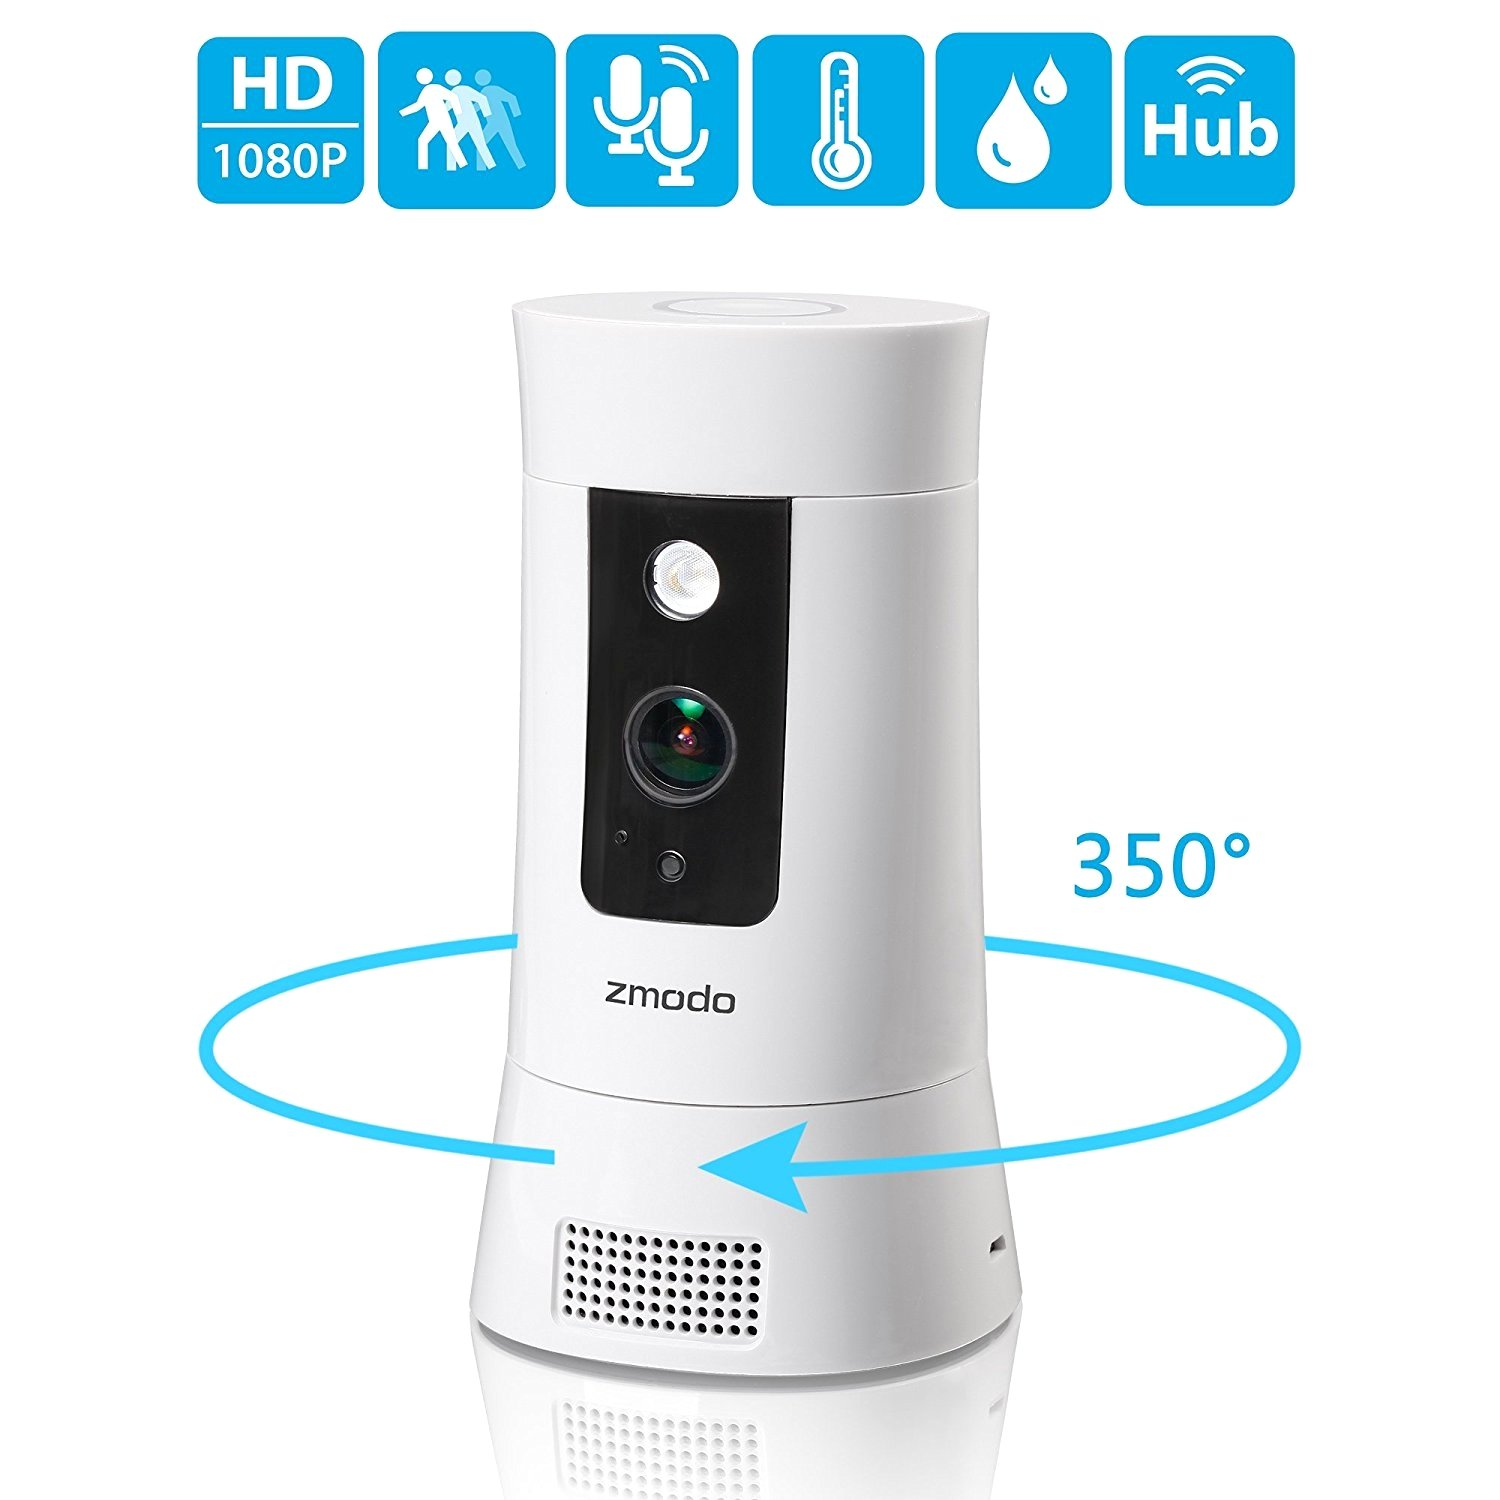 De Zmodo ZM-SD-H2002. IP-camera of alarmsysteem?